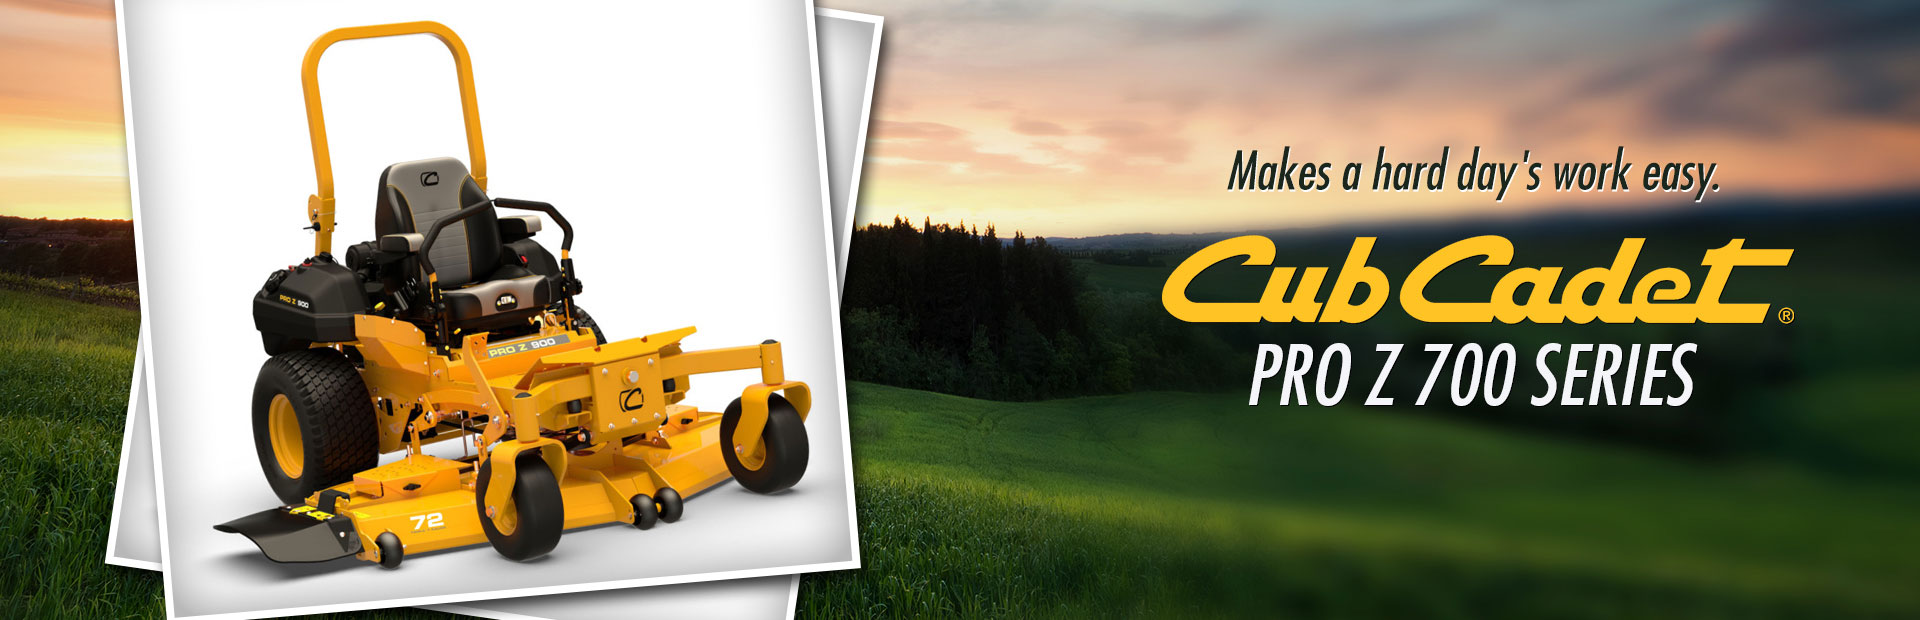 Cub Cadet Pro Z 700 Series: Click here to view the models.